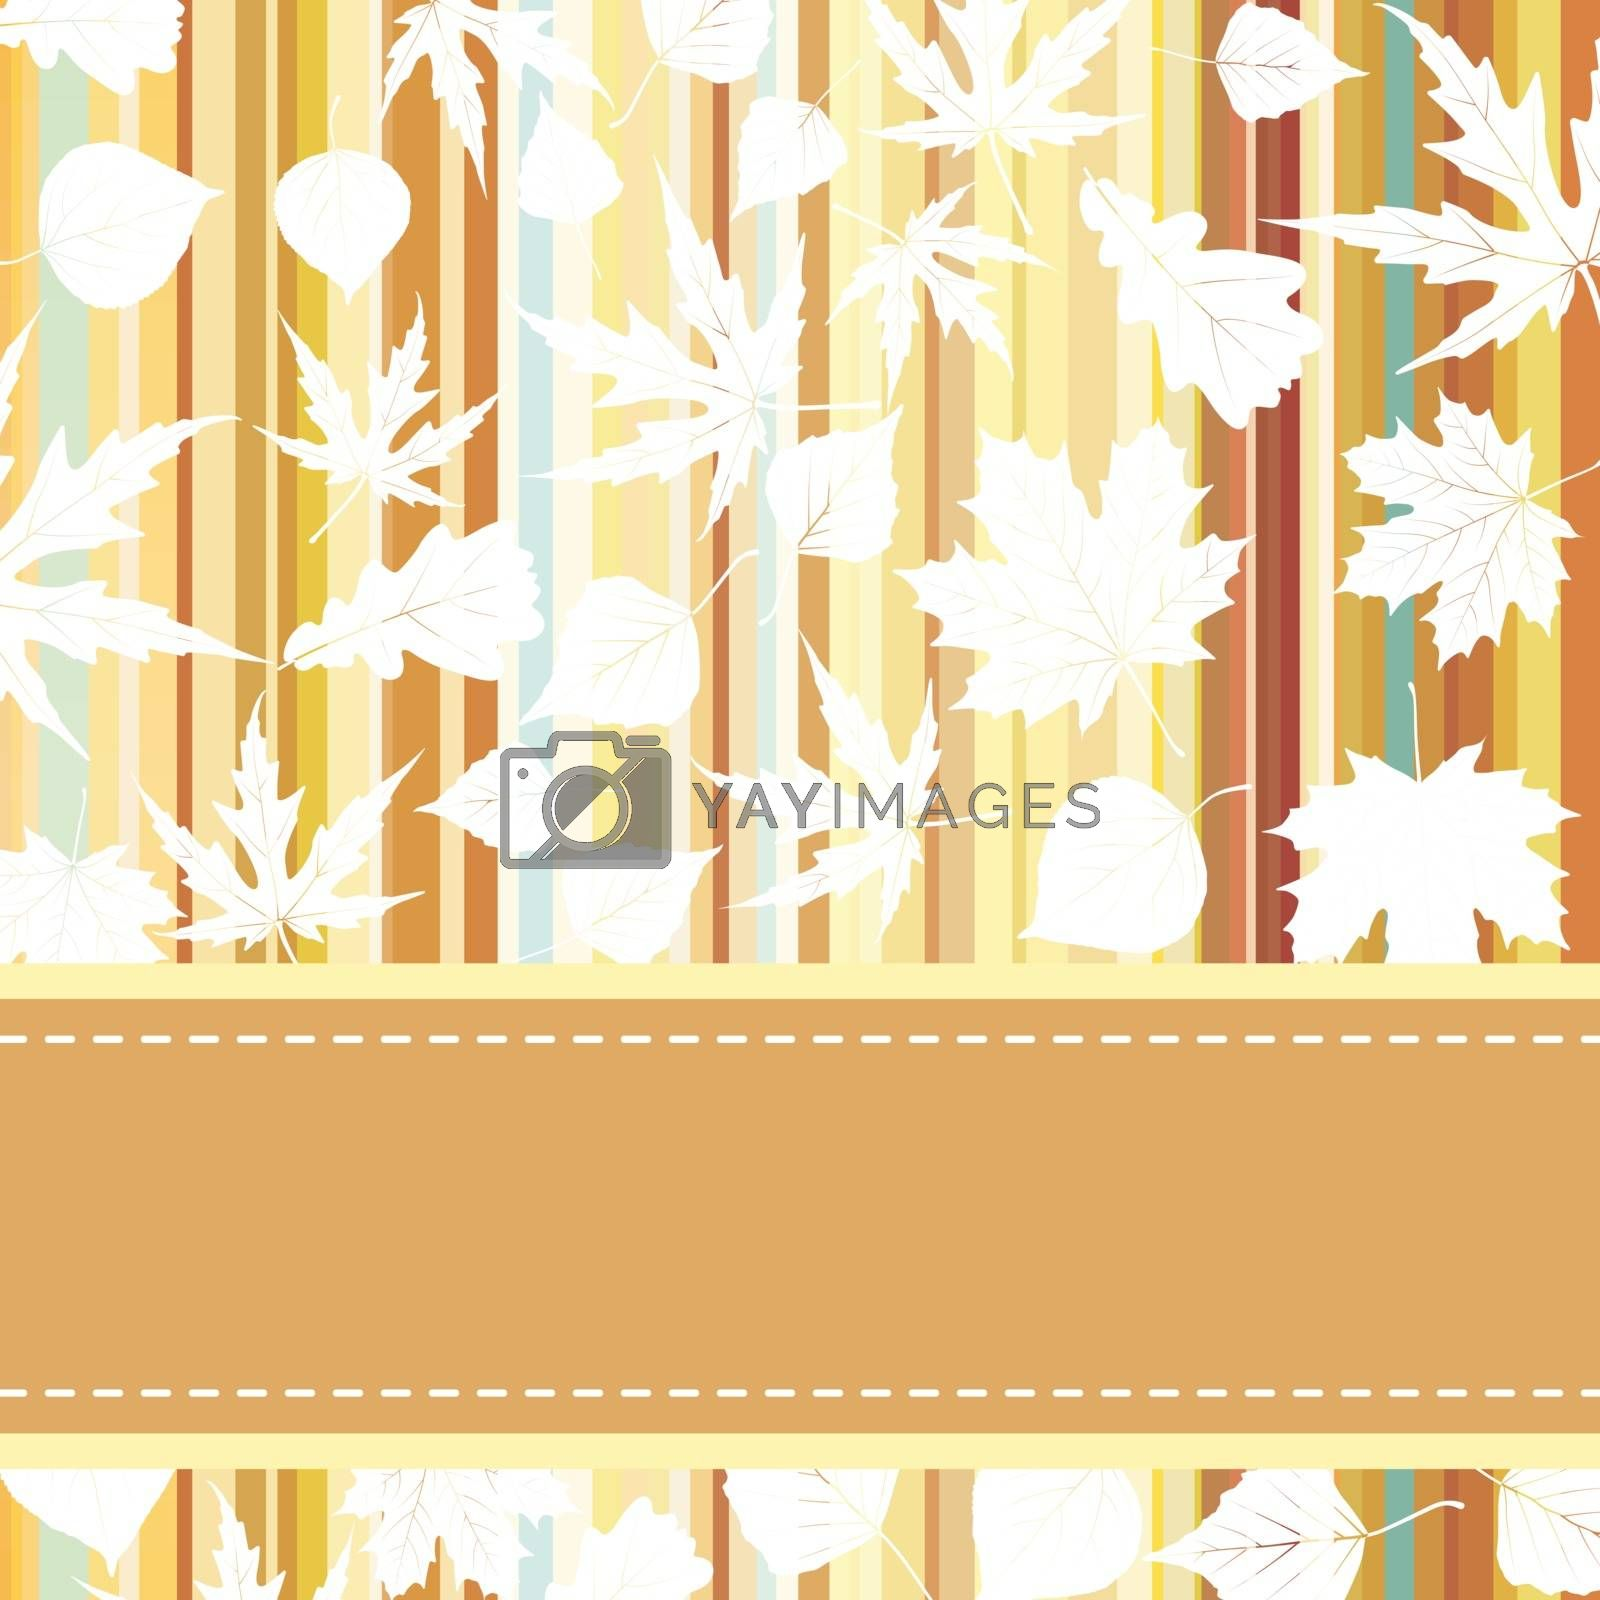 Retro pattern with autumn leafs. EPS 8 vector file included